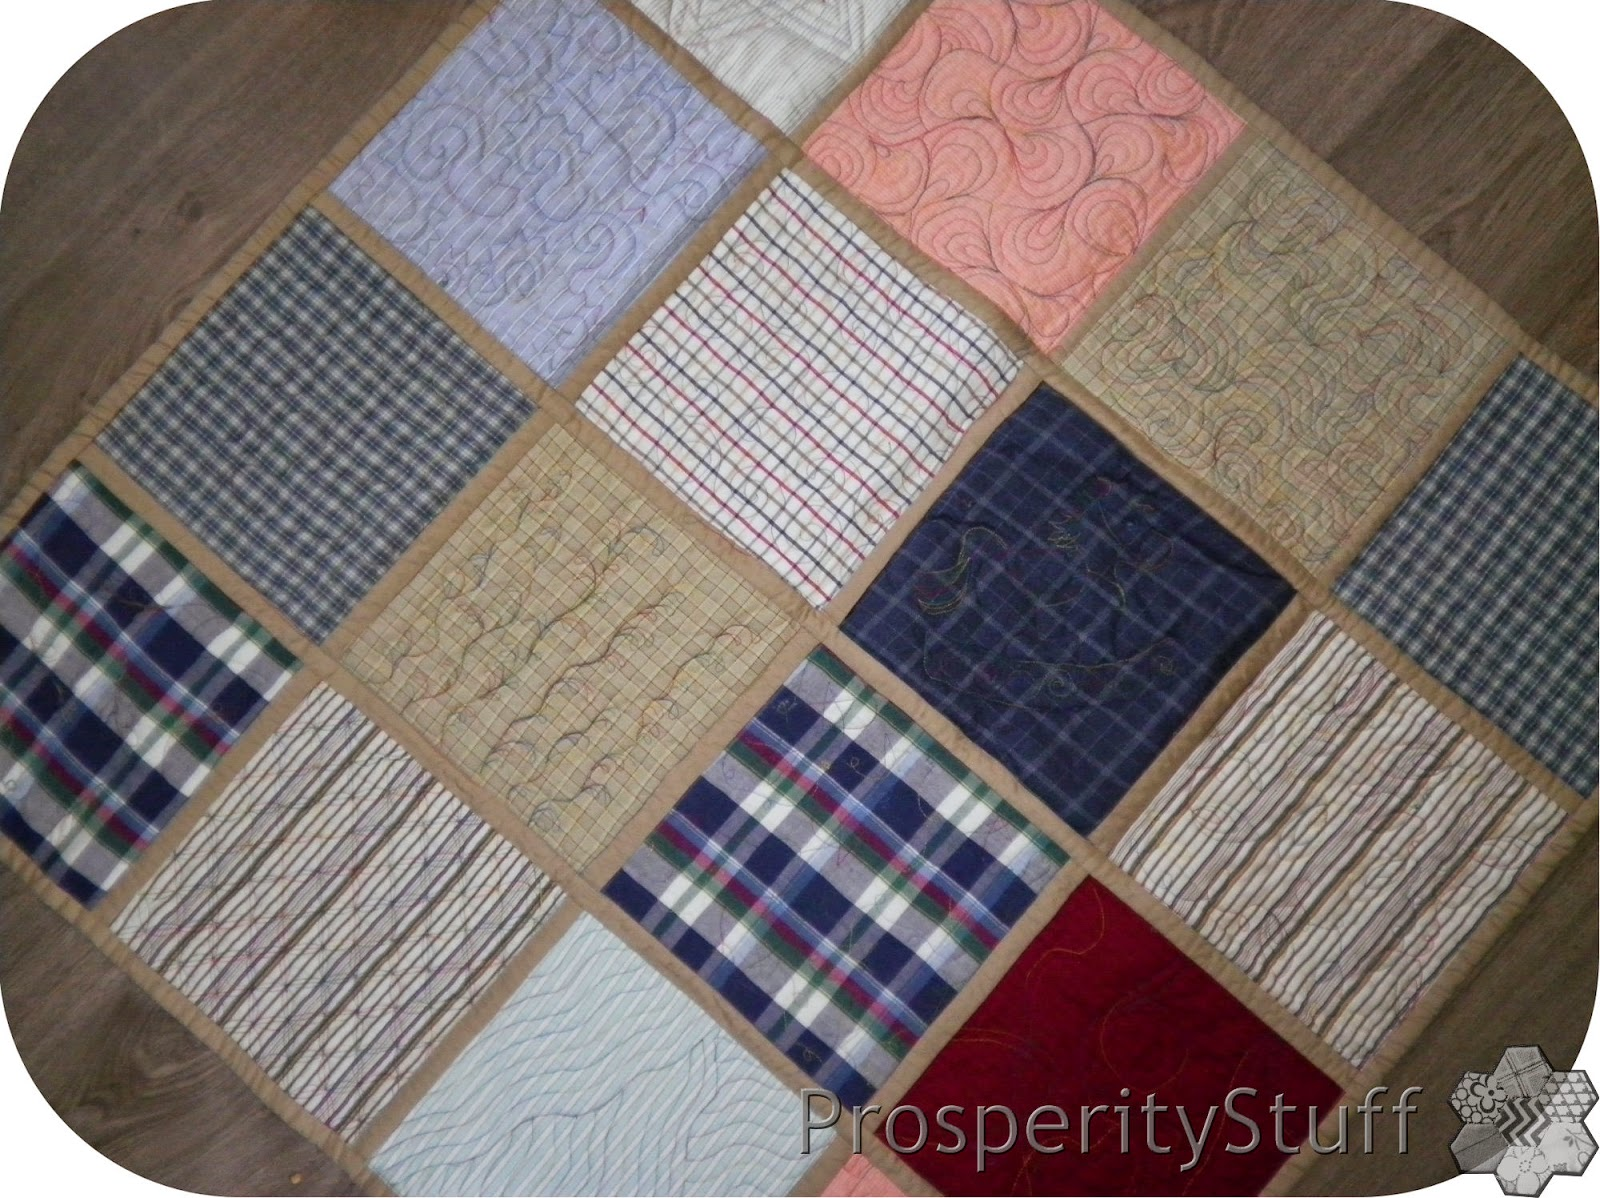 ProsperityStuff Quilt-As-You-Go Shirt Quilt (Plaids)